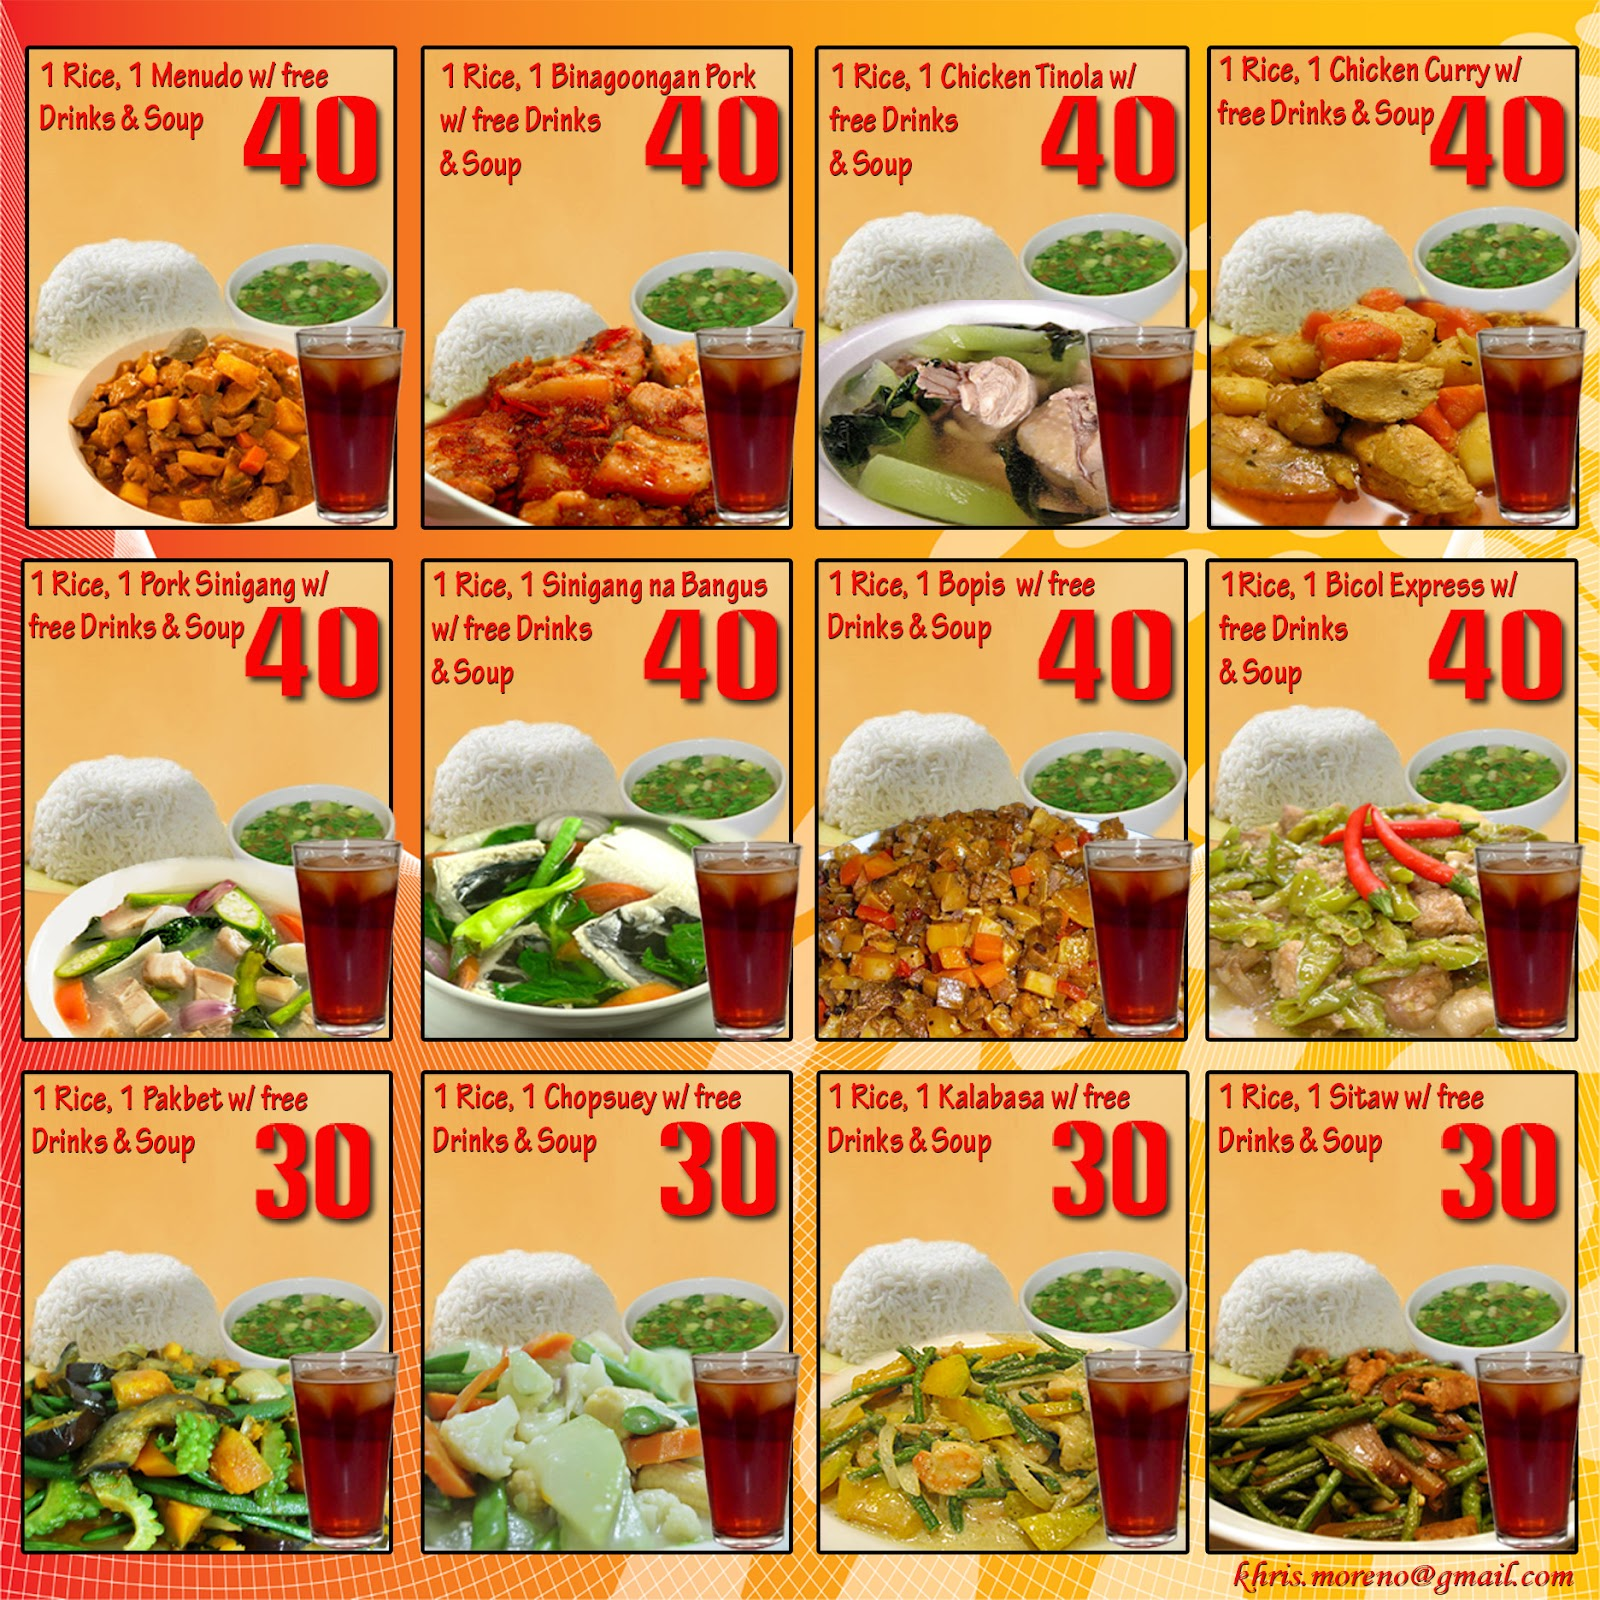 ESTRANO39;s TAPSILOGAN: VALUE MEAL